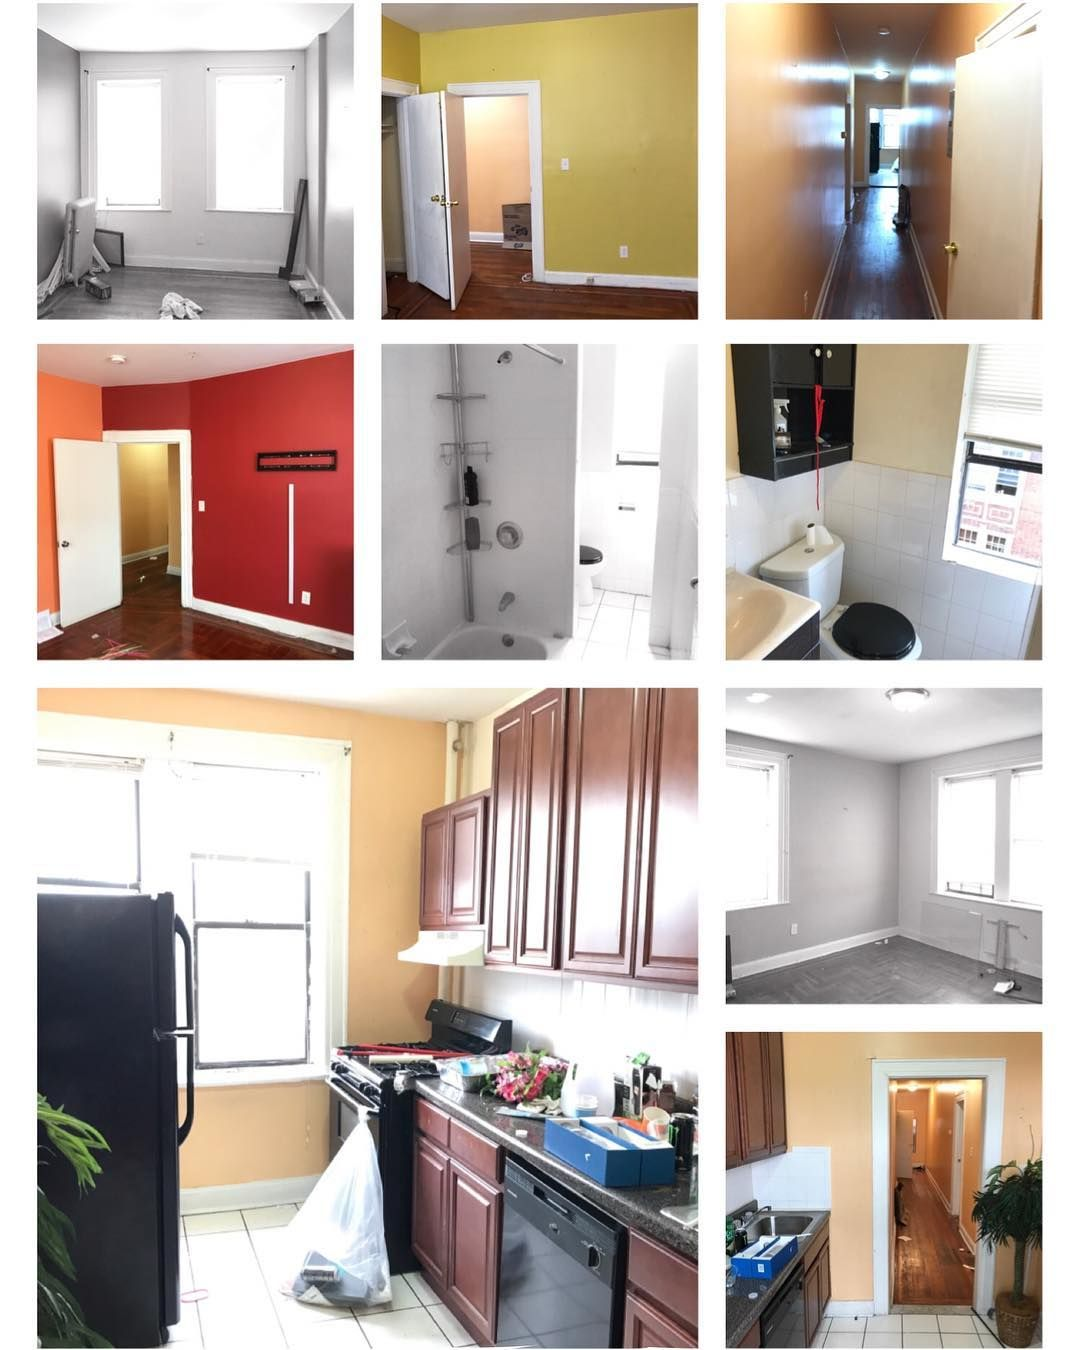 1 Bedroom Apartment Cheap: 1 Bedroom $1350 In #westnewyork #unioncity #renovated